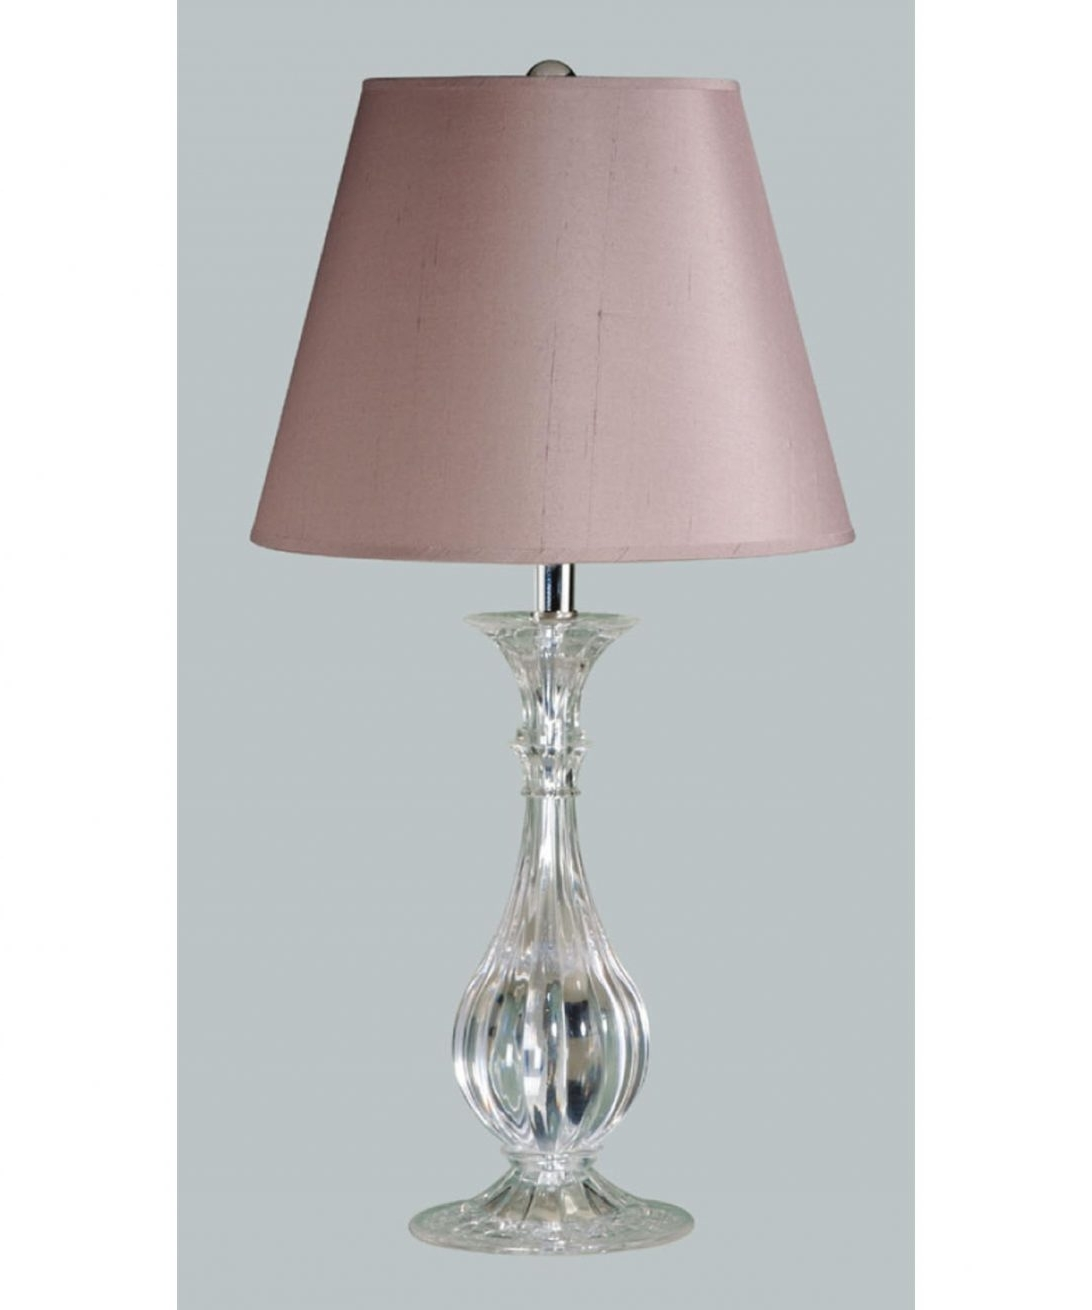 Favorite 1940s Floor Lamp New Glass Table Base Laura Ashley Lamps – Downthewicket In Laura Ashley Table Lamps For Living Room (View 8 of 20)